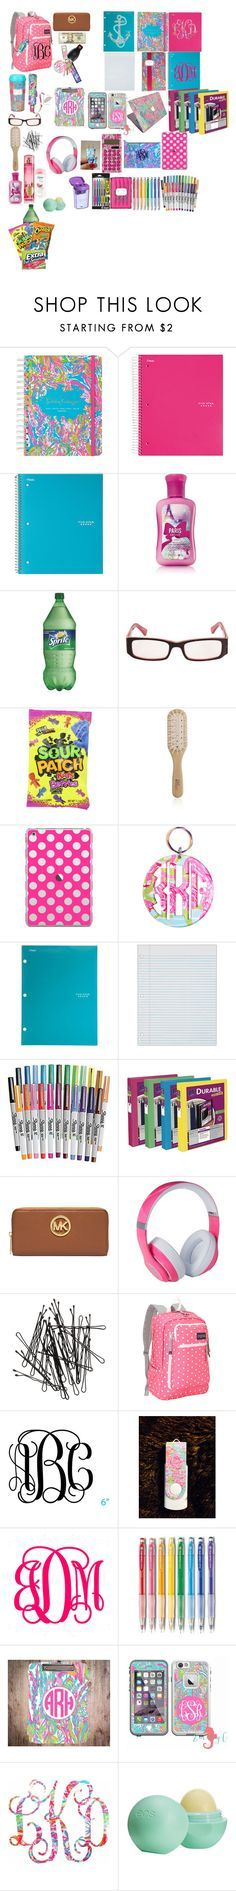 """""""back to school preppy school supplies for teens"""" by turnerjazmyne on Polyvore featuring Lilly Pulitzer, Philip Kingsley, Casetify, OPTIONS, Sharpie, Avery, Michael Kors, Beats by Dr. Dre, H&M and JanSport"""